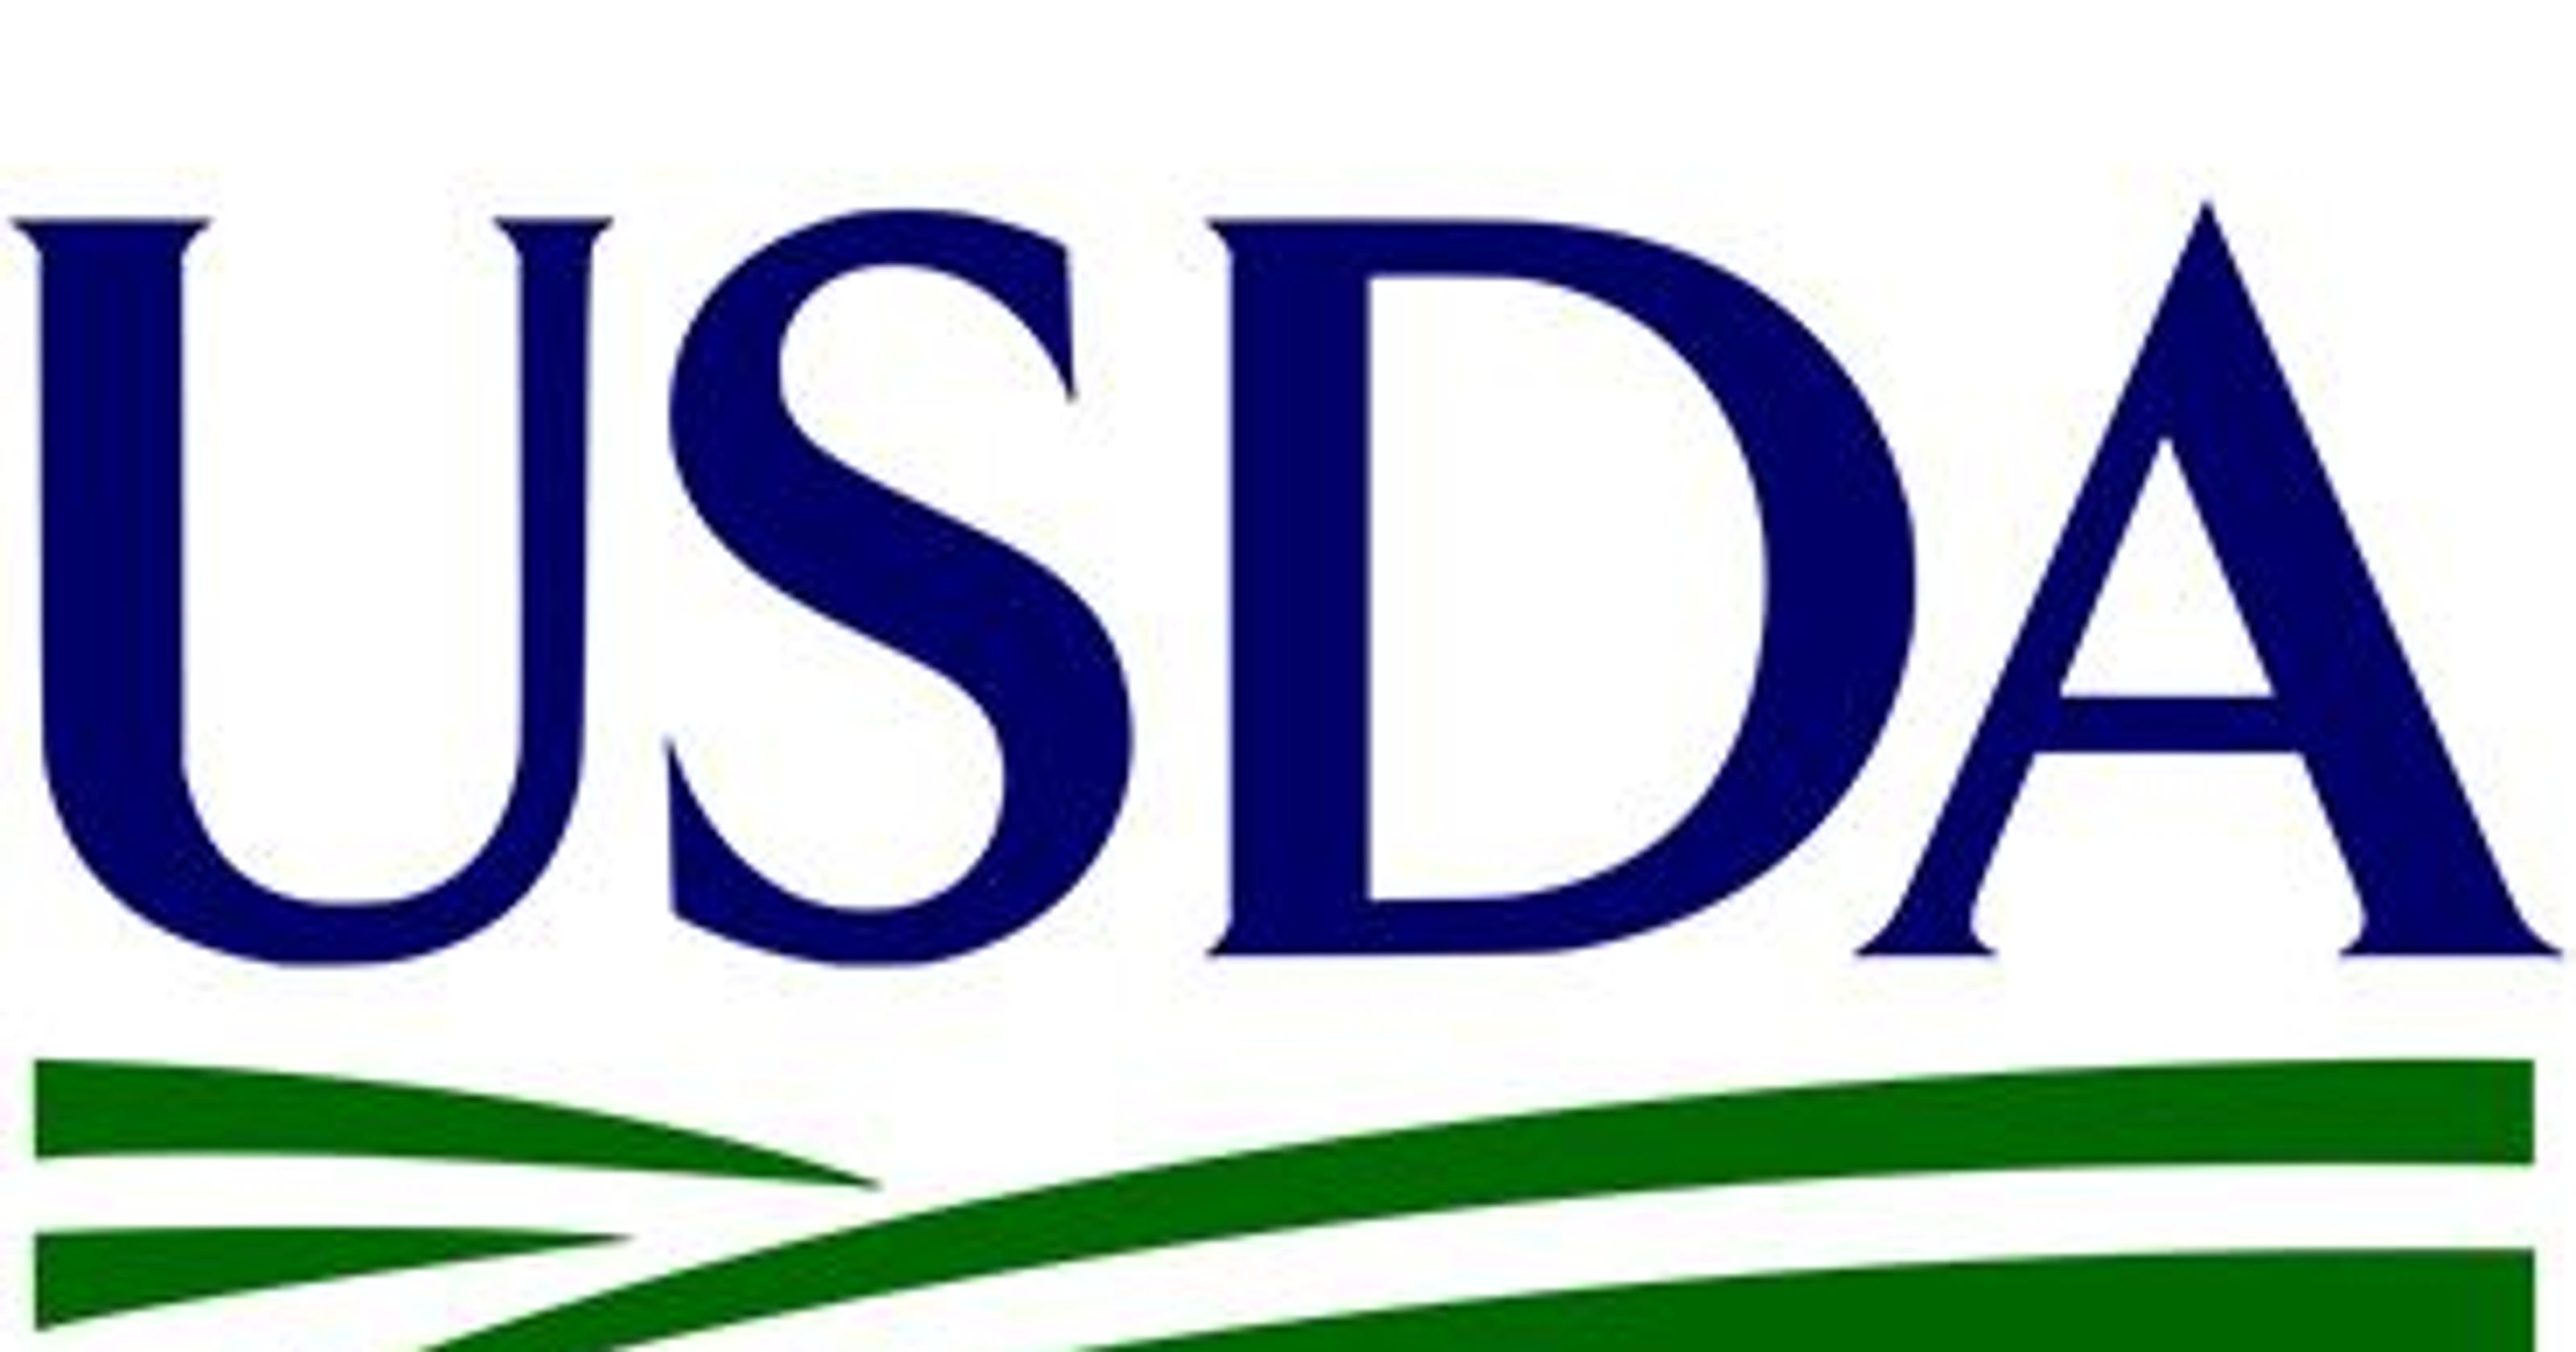 The USA Recalls Beef, Memorial day BBQ affected